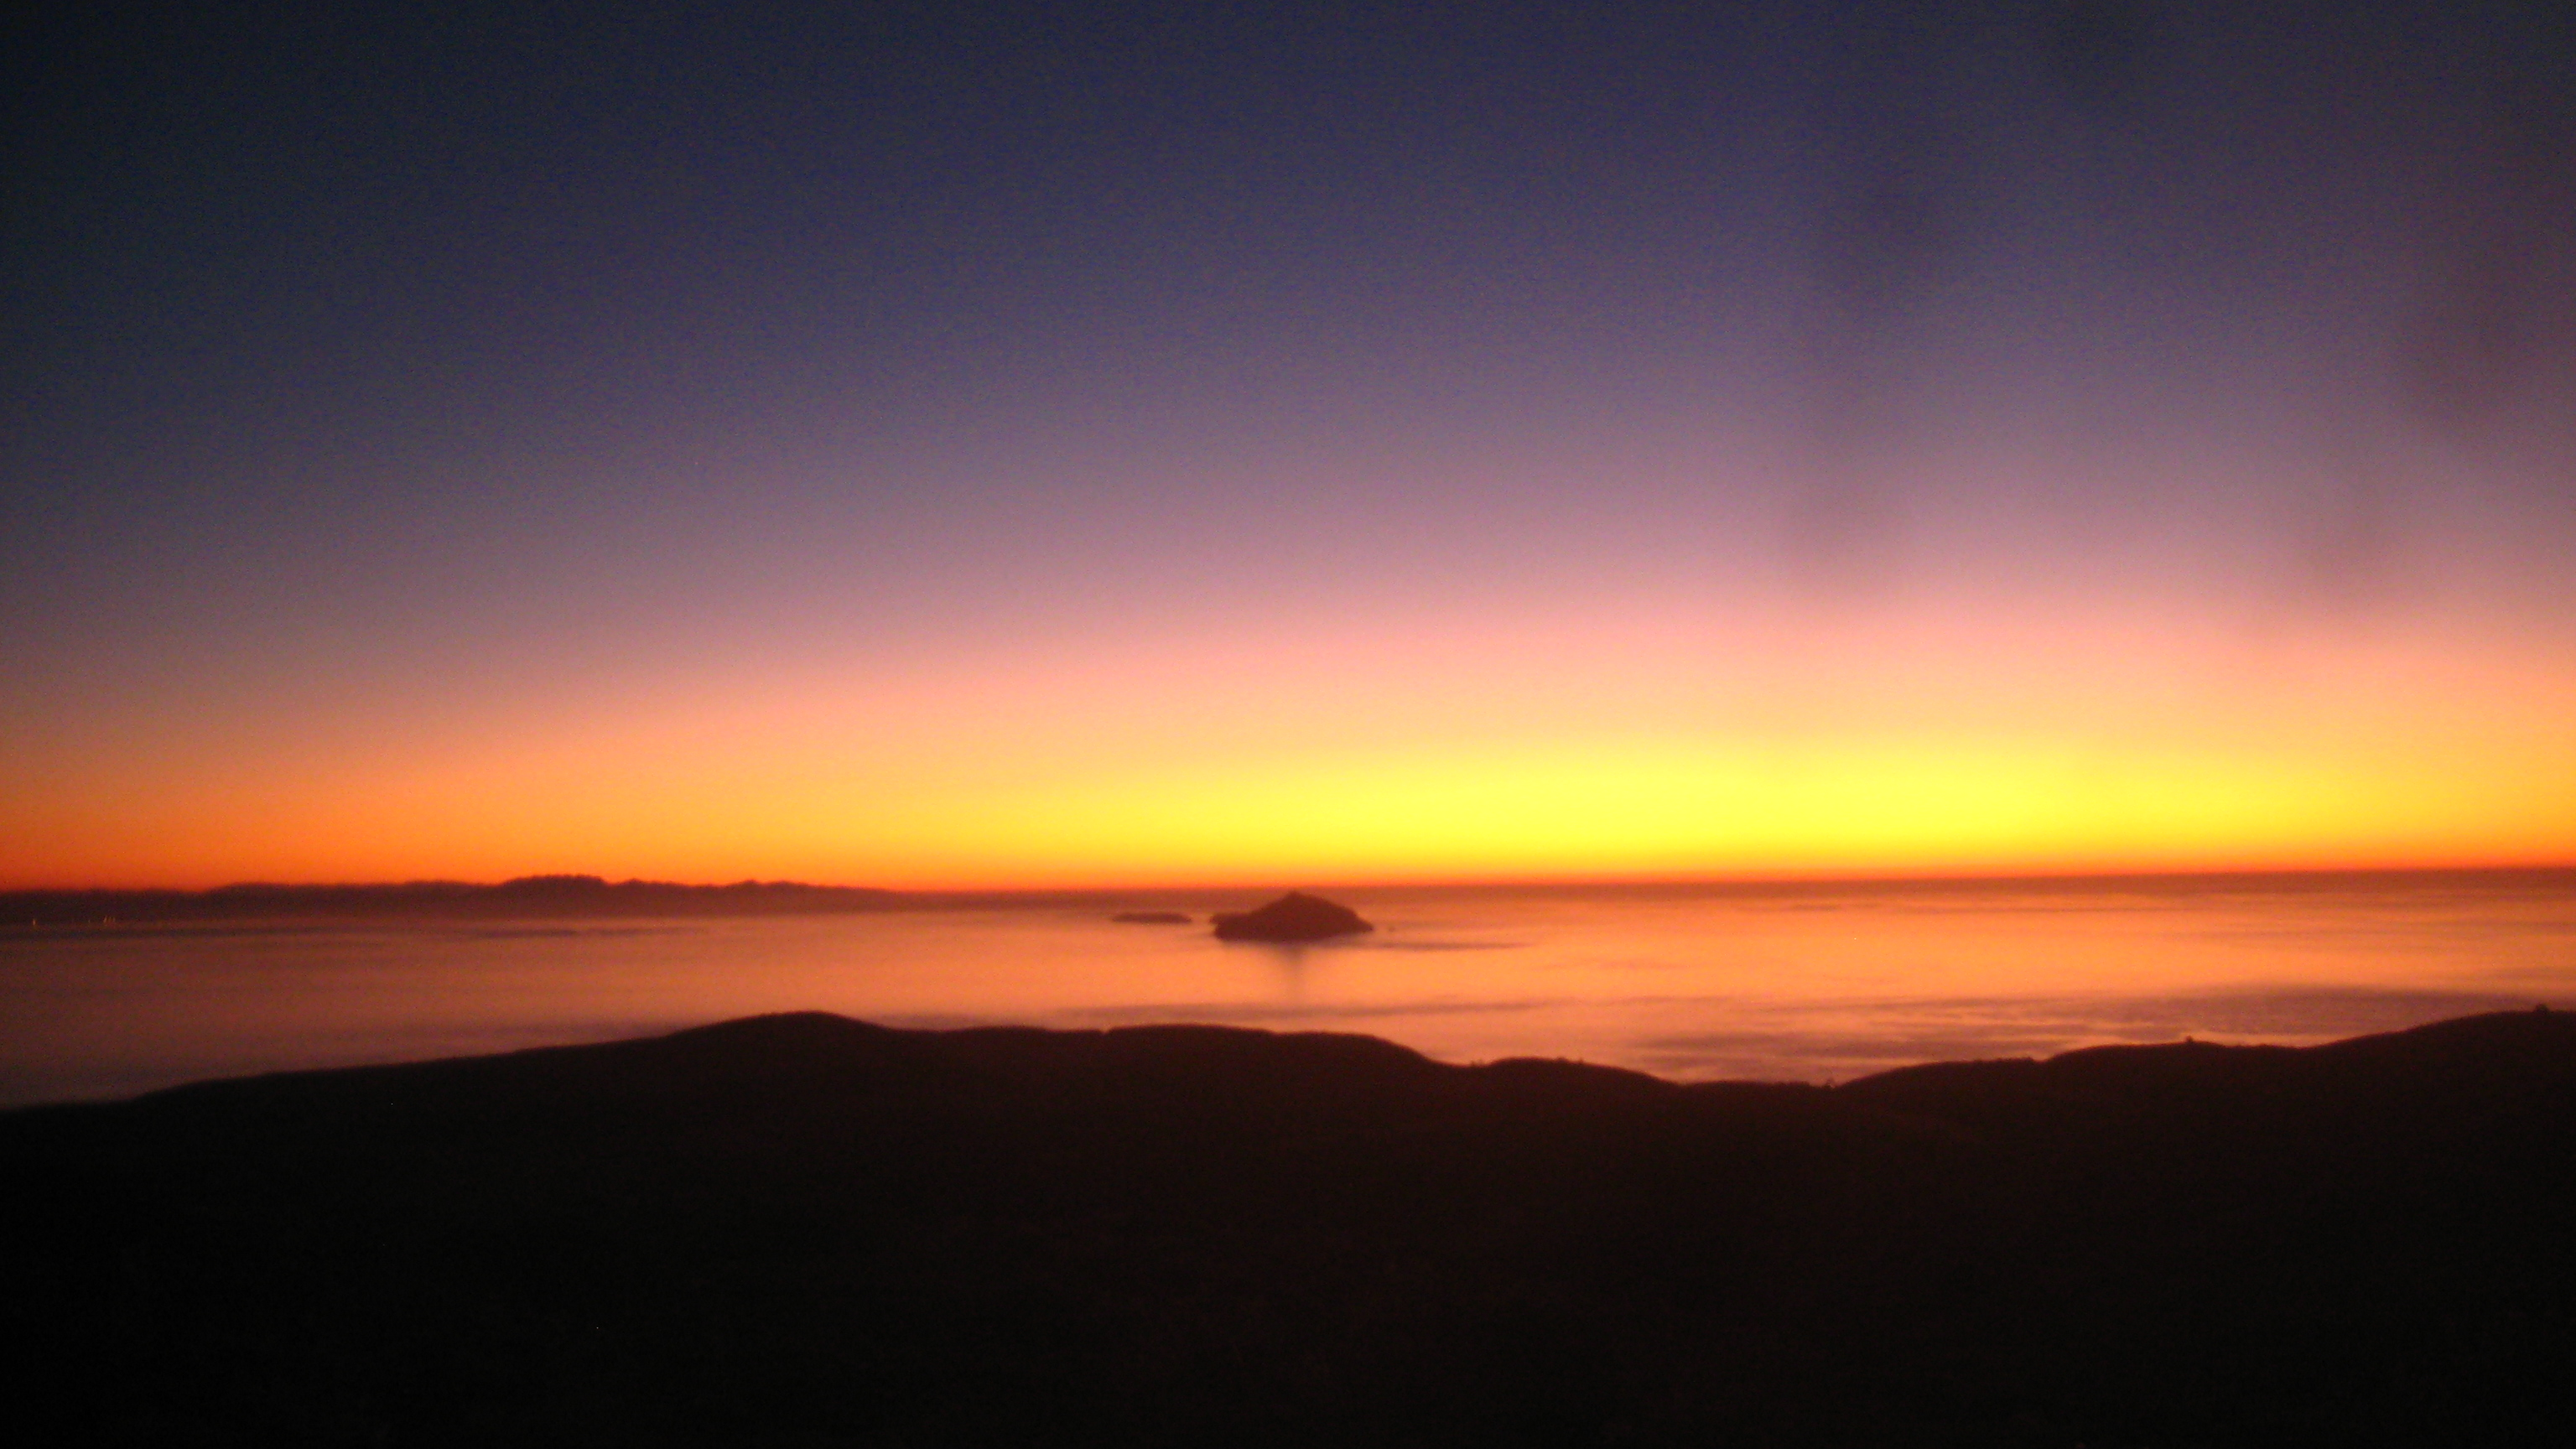 Sunrise over Anacapa Island viewed from the Montana Trail on Santa Cruz Island